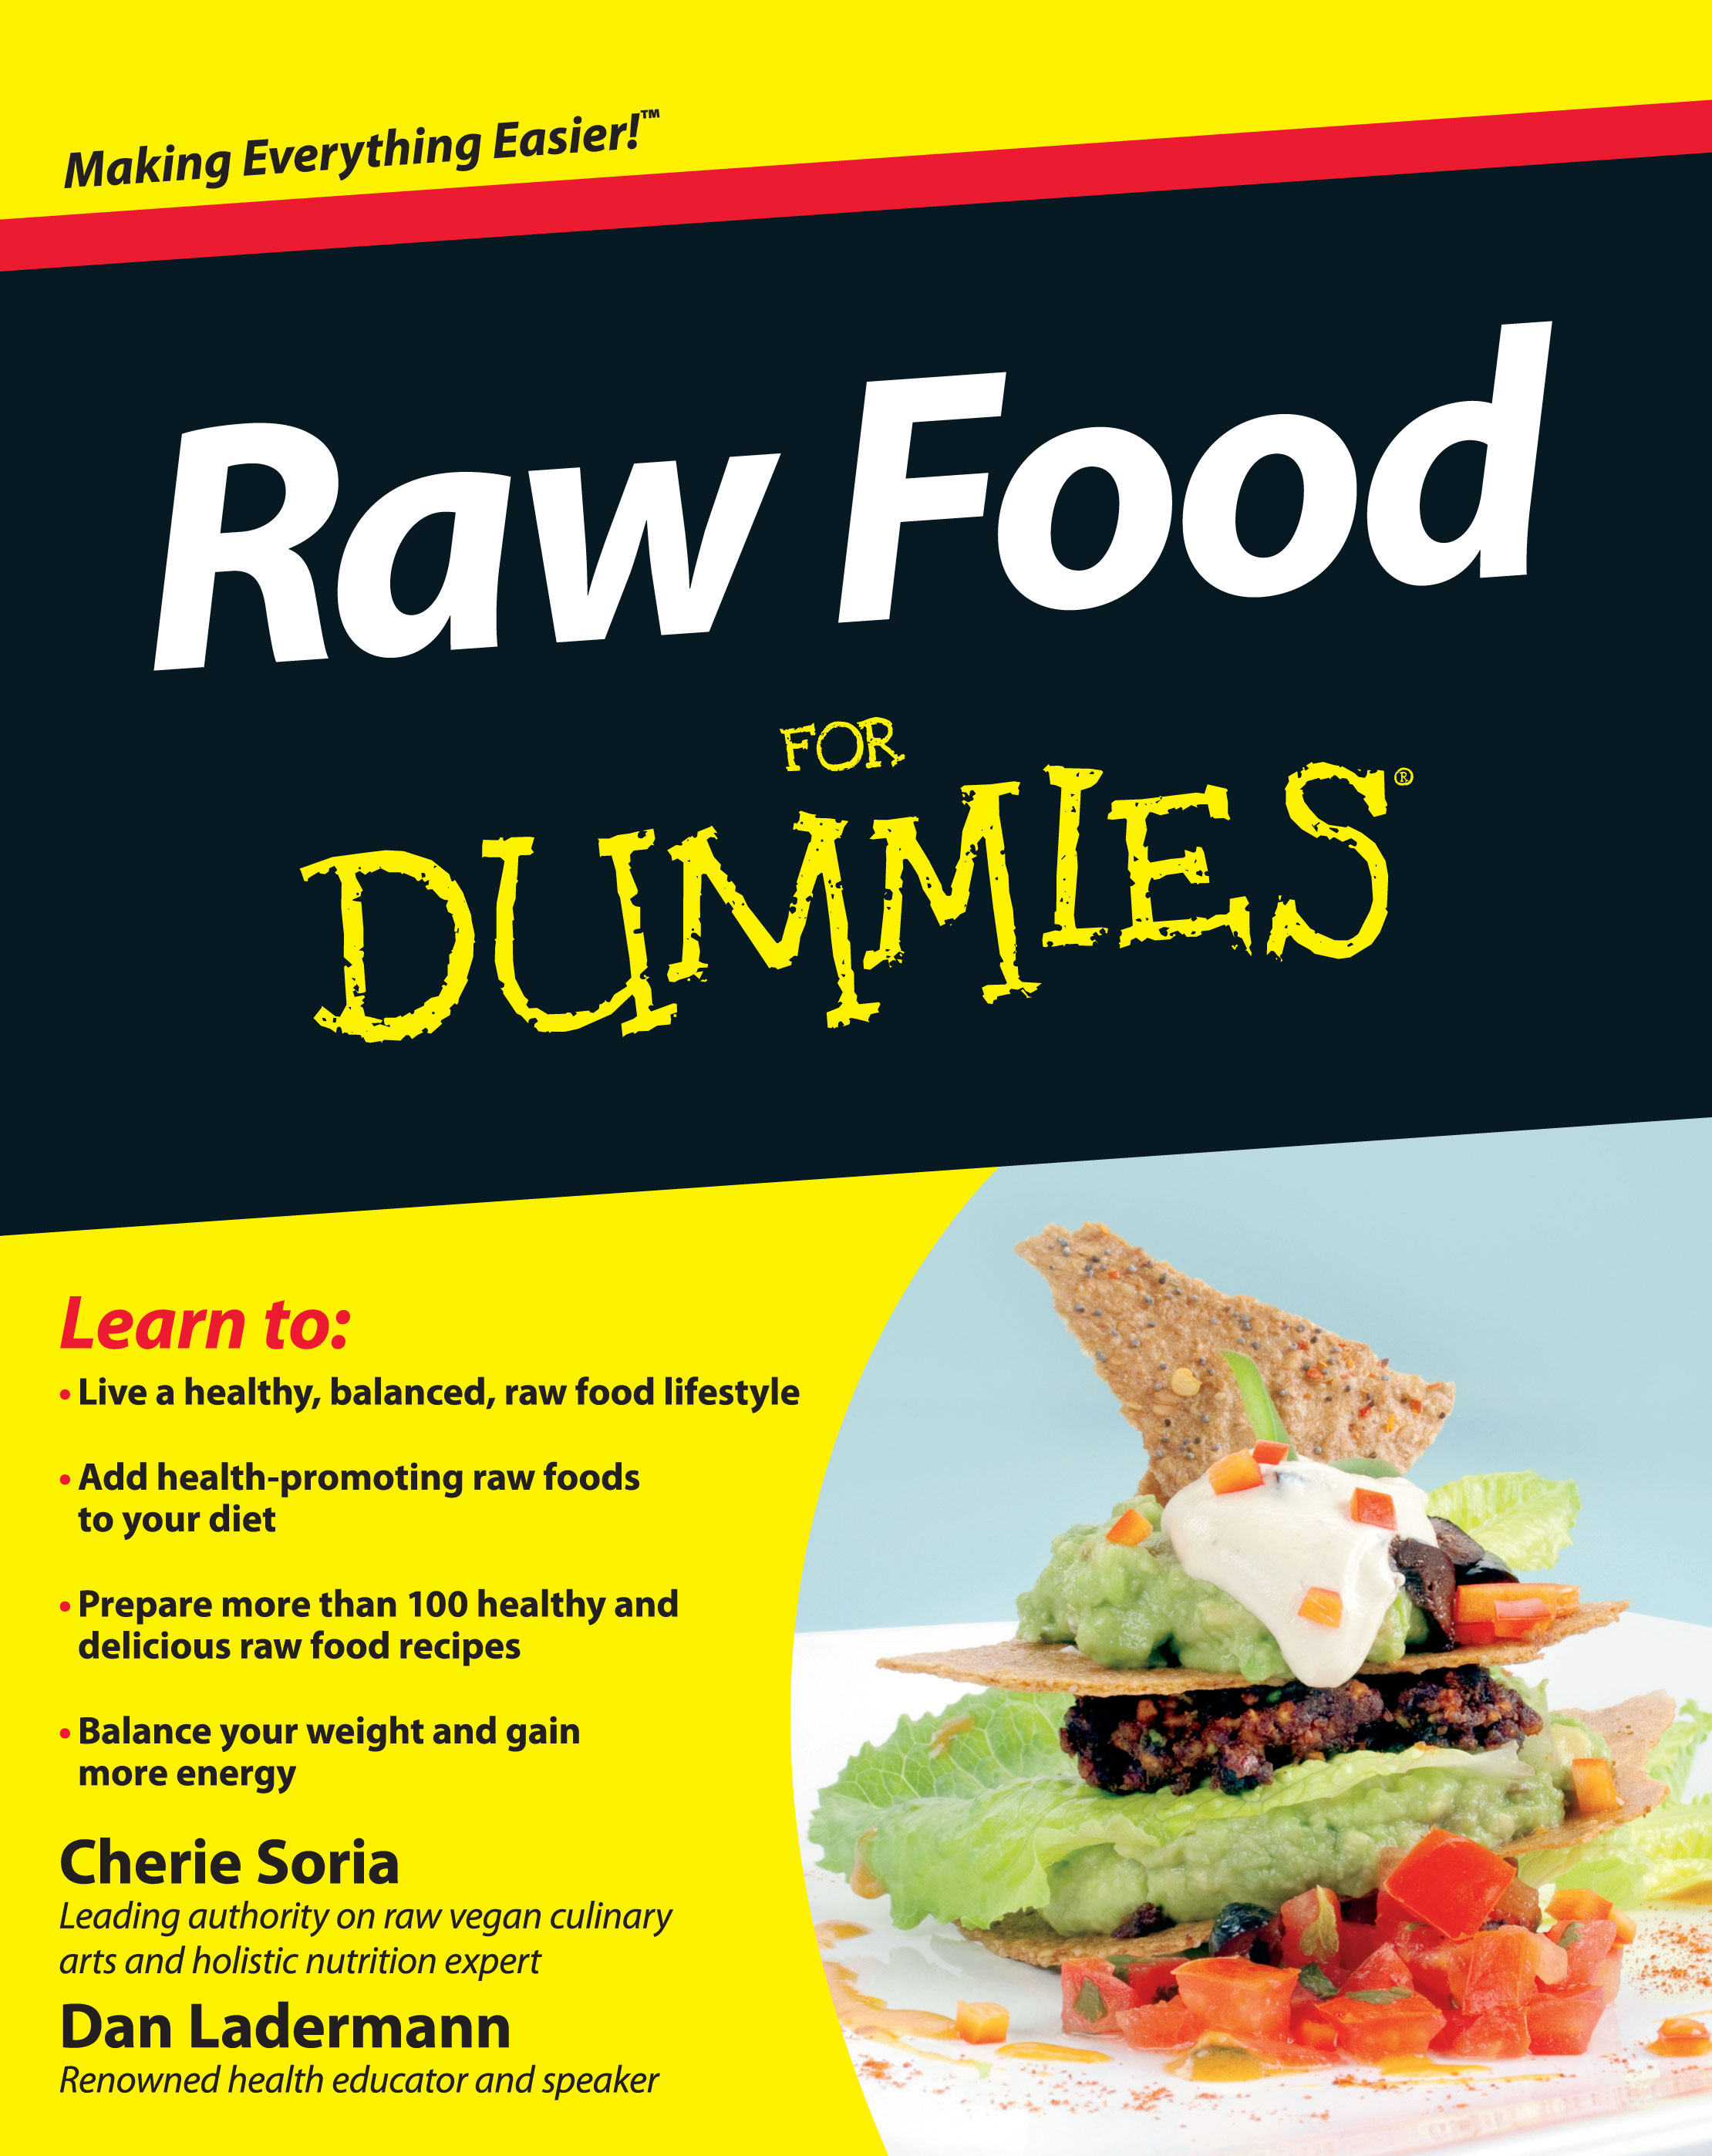 Raw food for dummies north american vegetarian society raw food for dummies forumfinder Choice Image